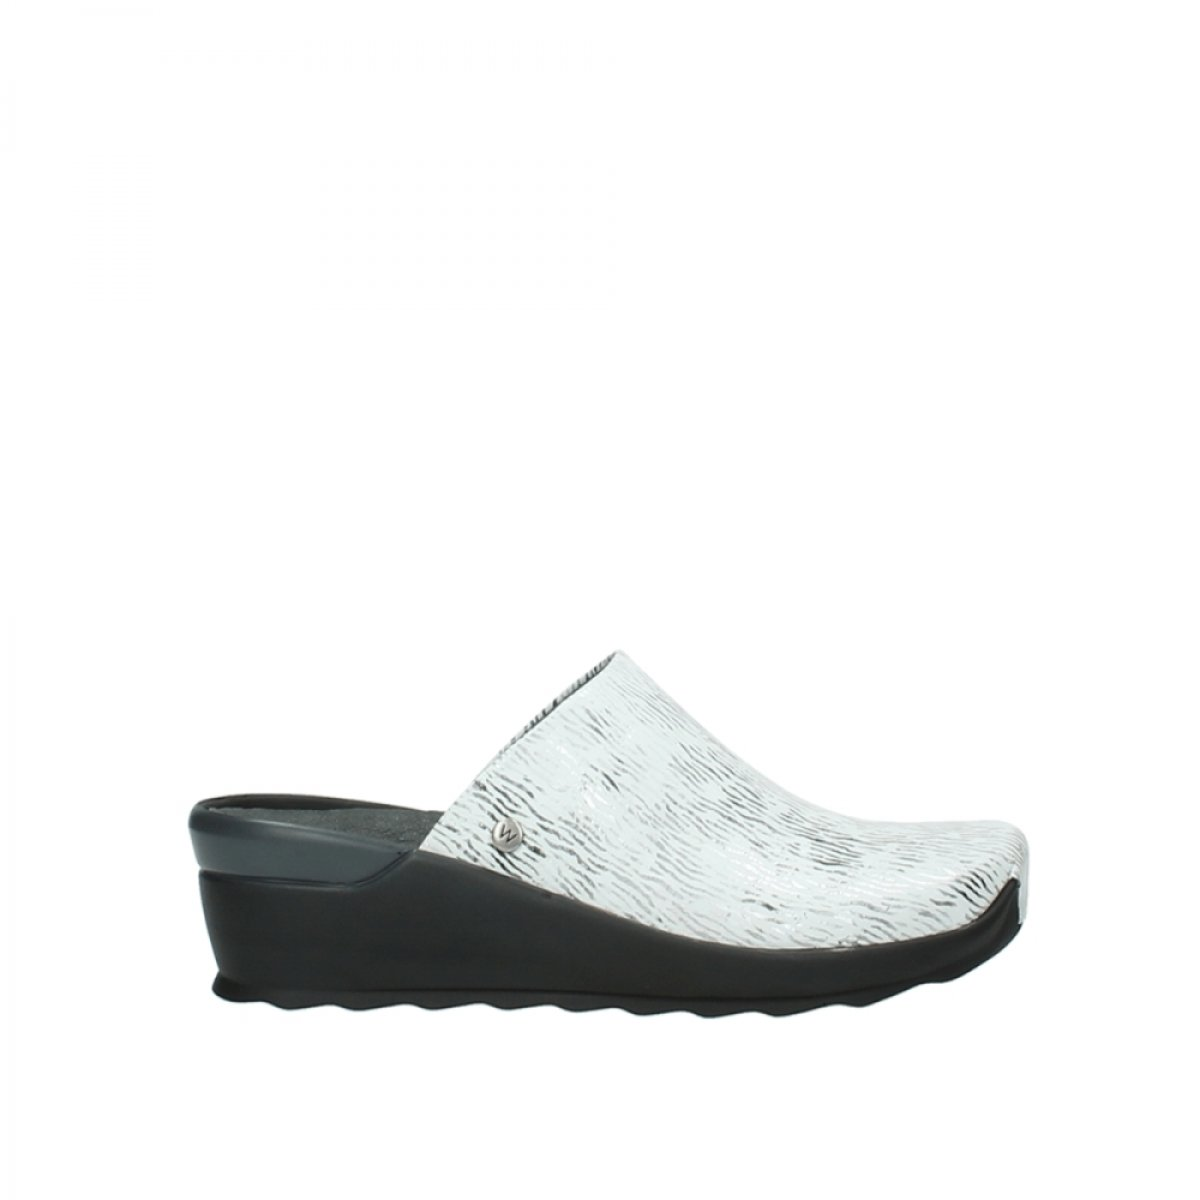 Wolky Comfort Sneakers Ewood B01LY9MVVQ 43 M EU|70110 White/Black Canal Leather